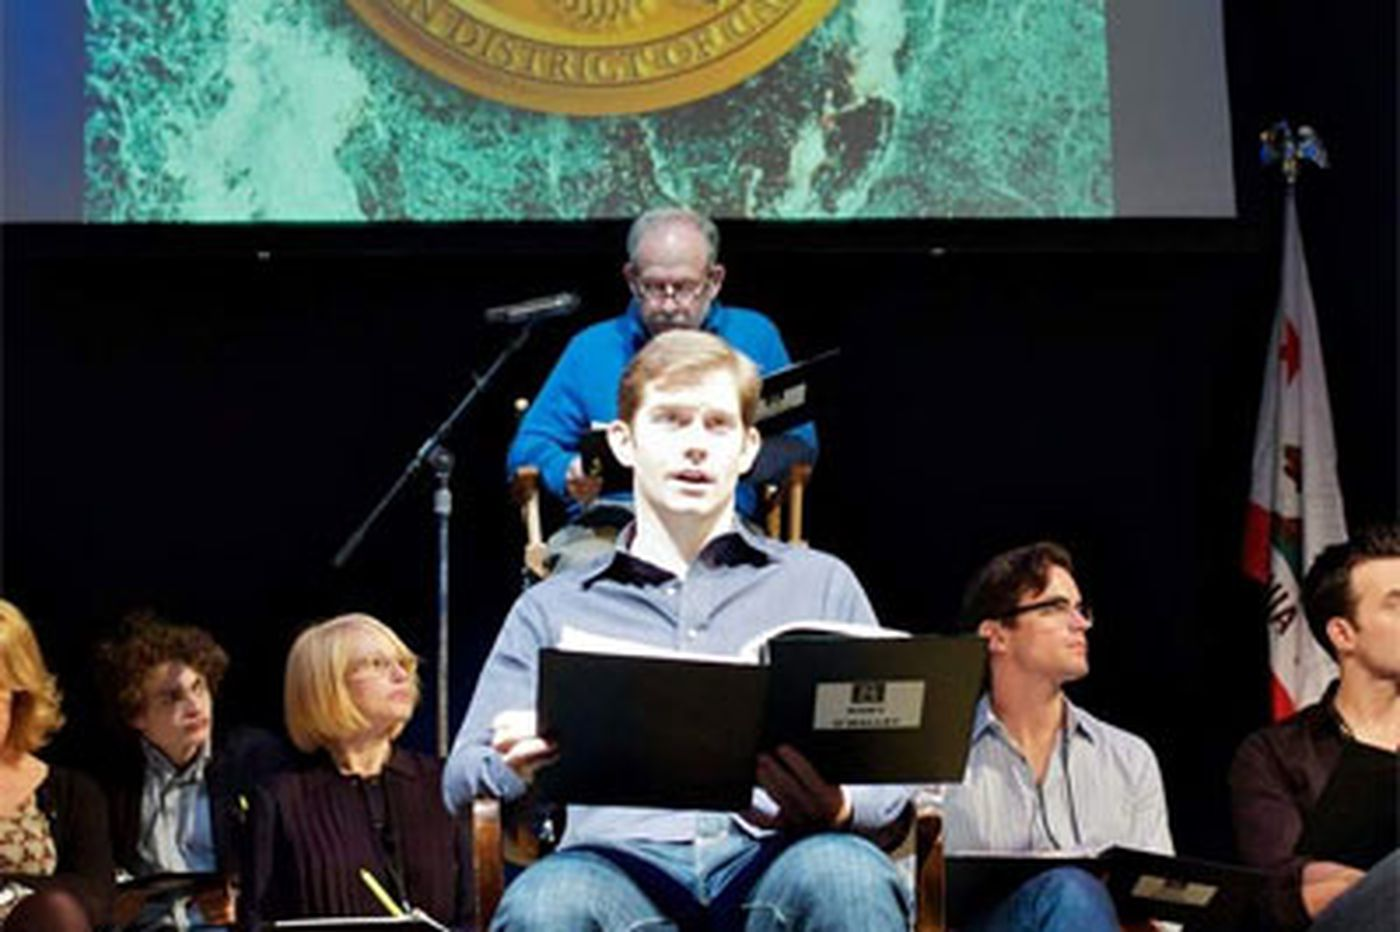 Acting for a cause: Play reading opposes Calif. amendment banning same-sex marriage